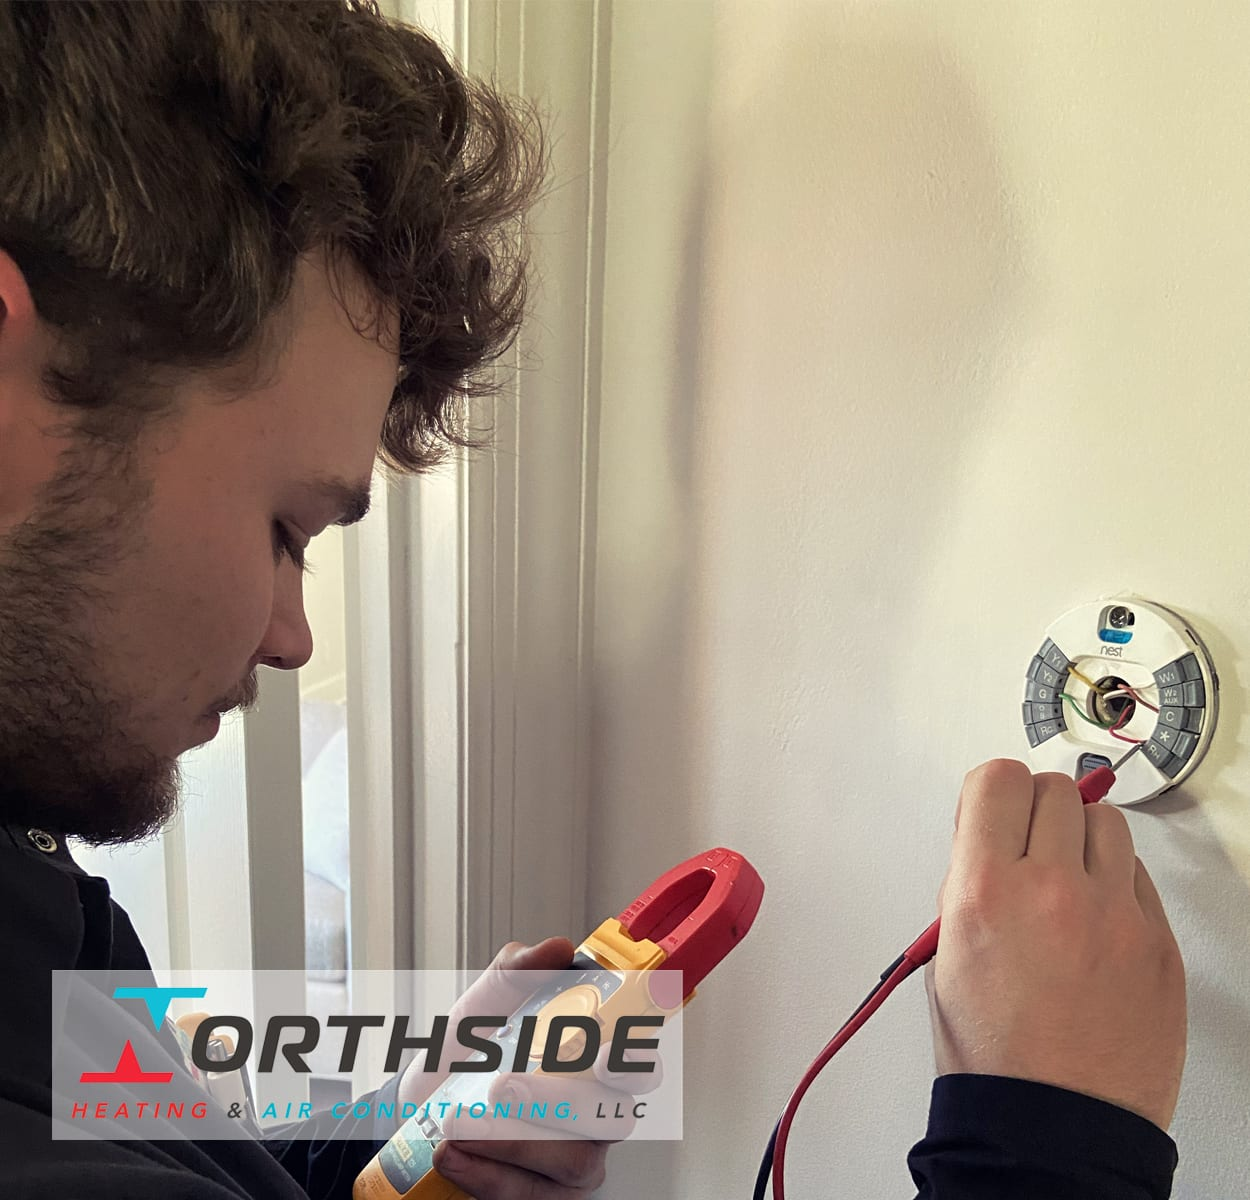 Installing the Nest thermostat